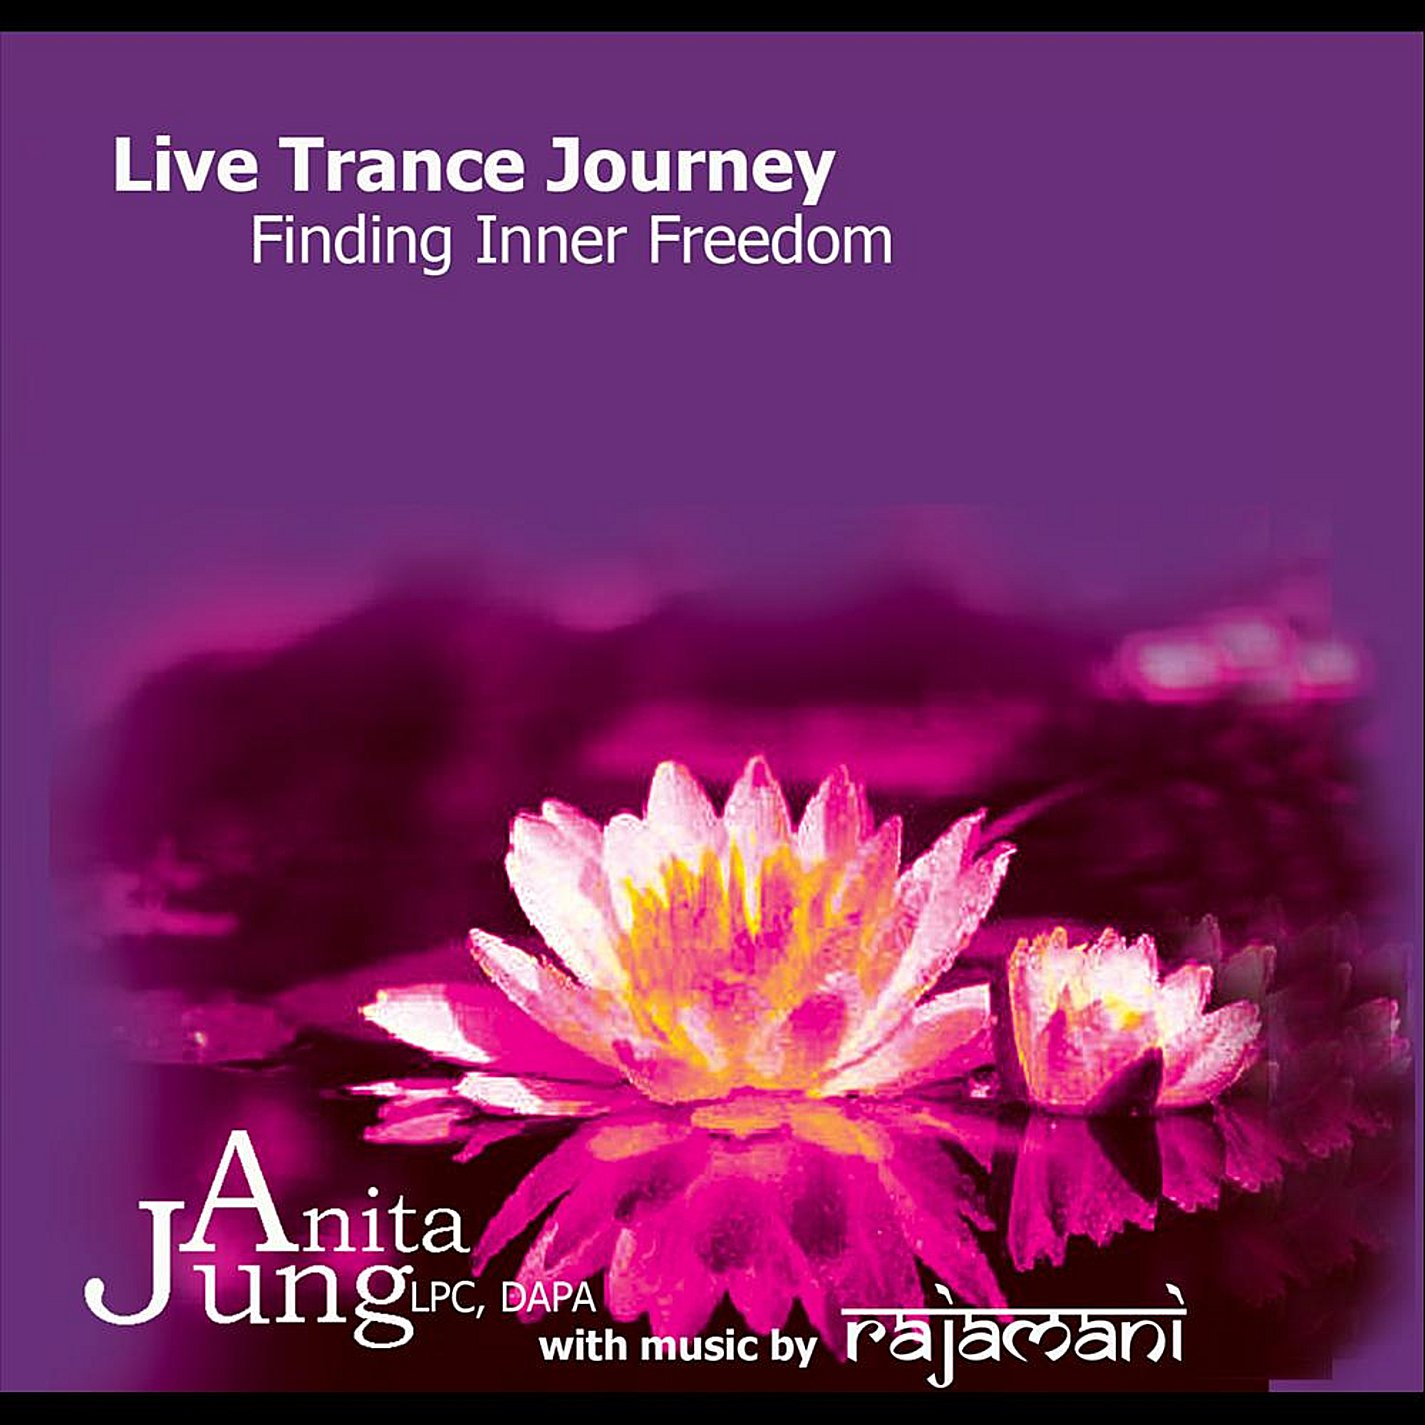 Live Trance Journey by CD Baby